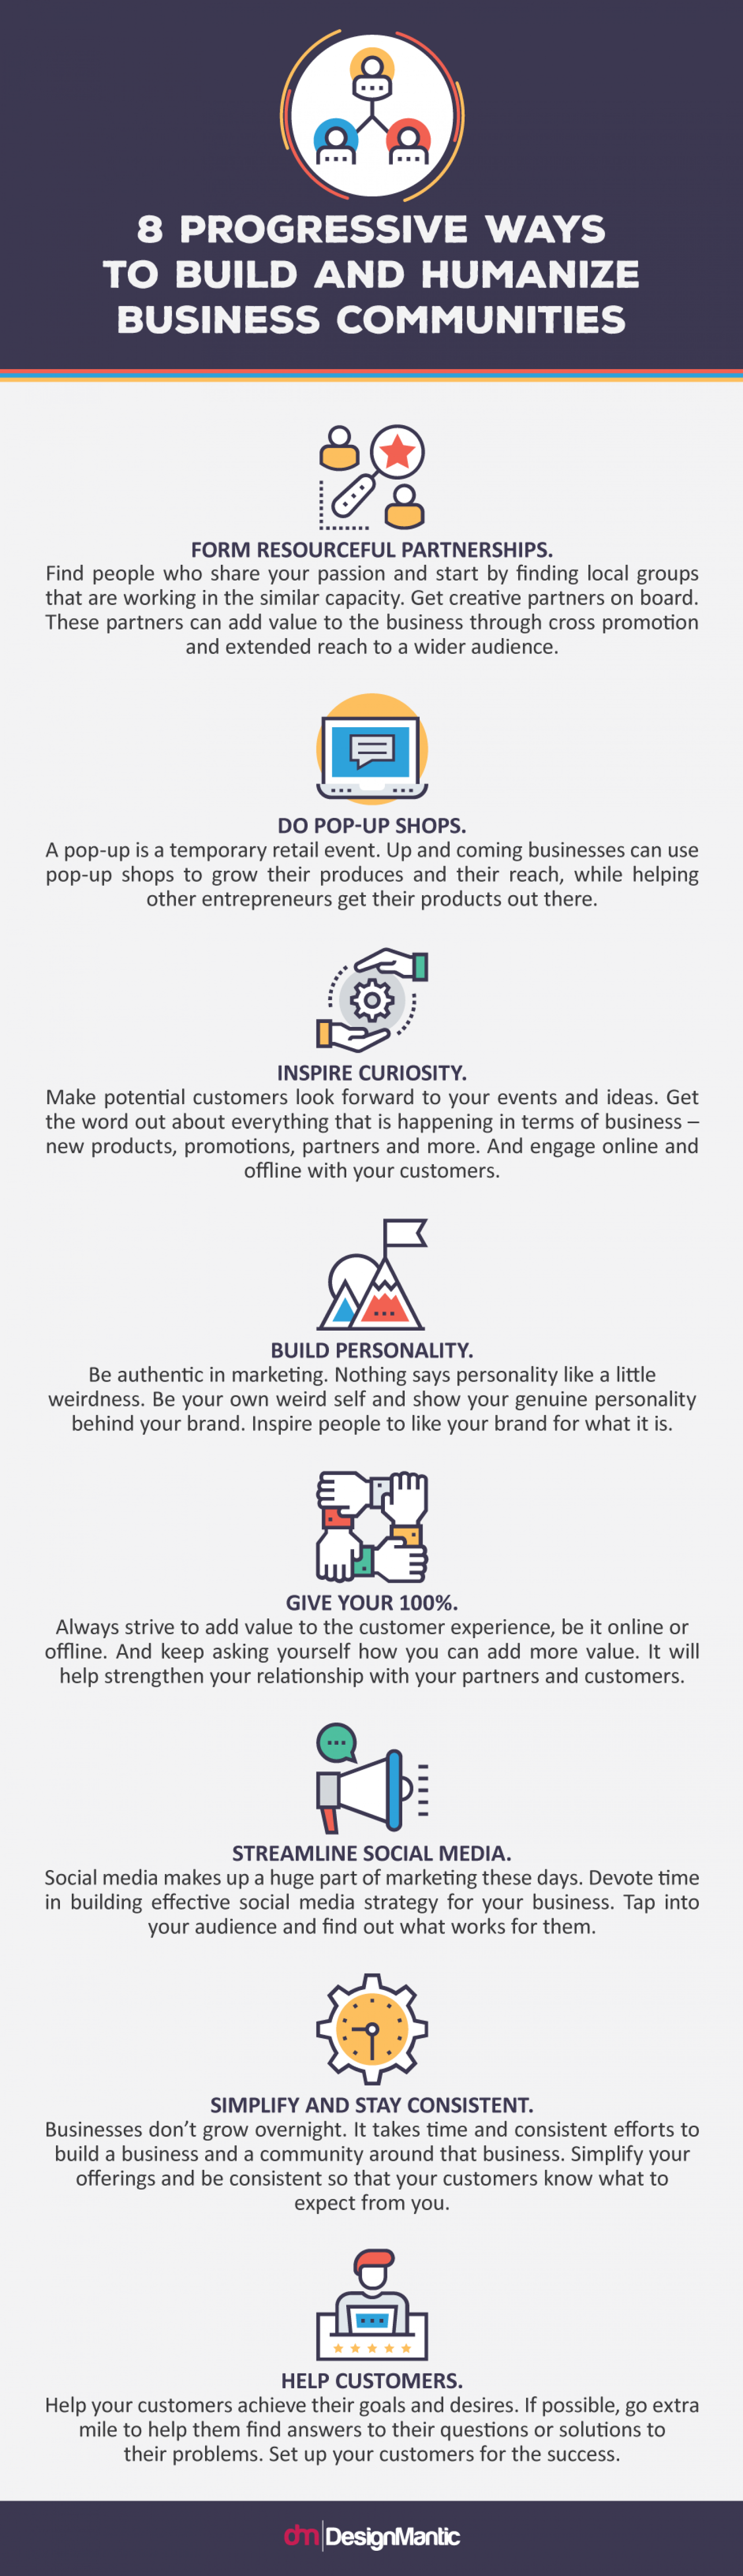 8 Progressive Ways To Build and Humanize Business Communities! Infographic